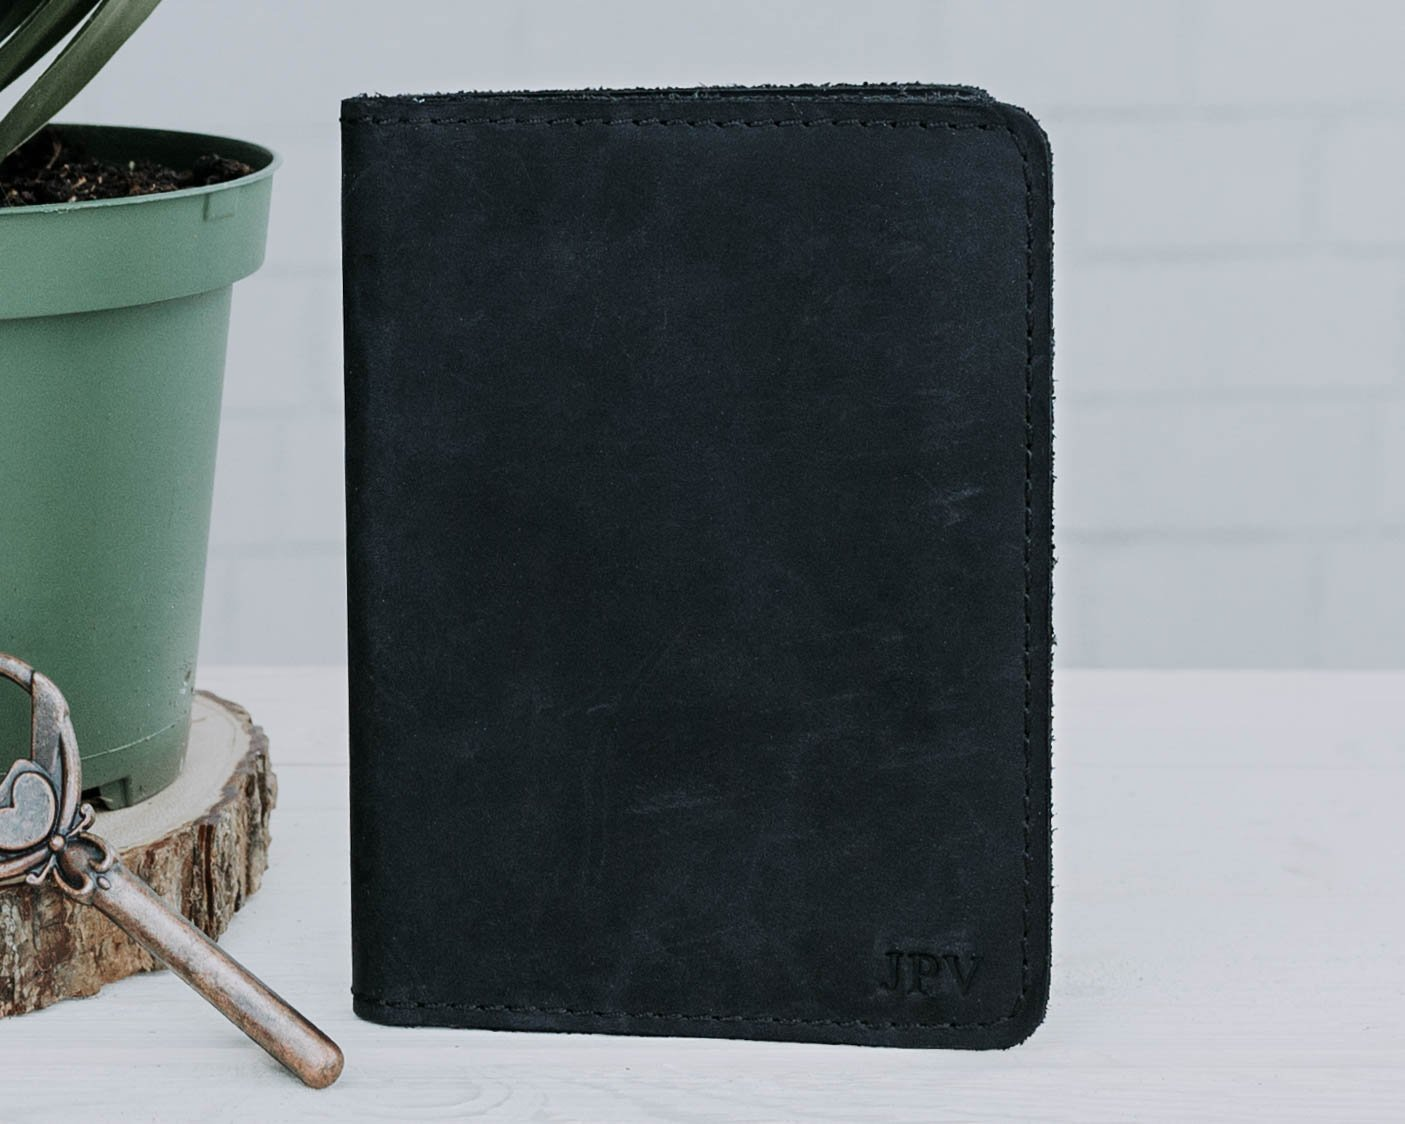 Personalized Passport Wallet, Handmade Distressed Leather Travel Wallet, Handcrafted Soft Leather Passport Holder, Rustic Passport Cover - Pike Charcoal Black